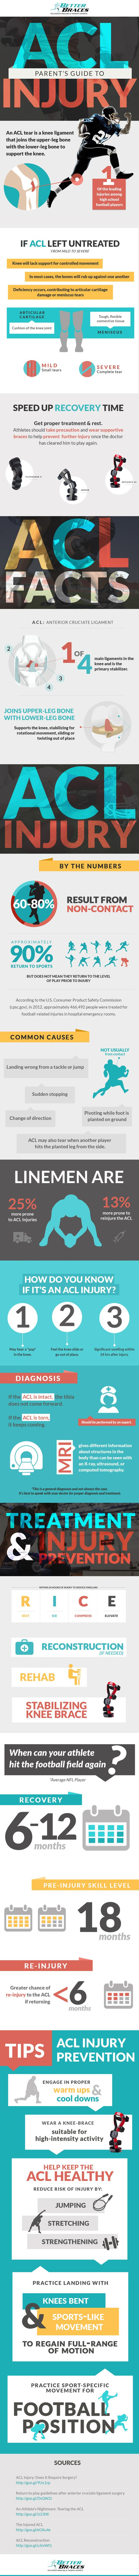 Your step-by-step guide to #ACL recovery: